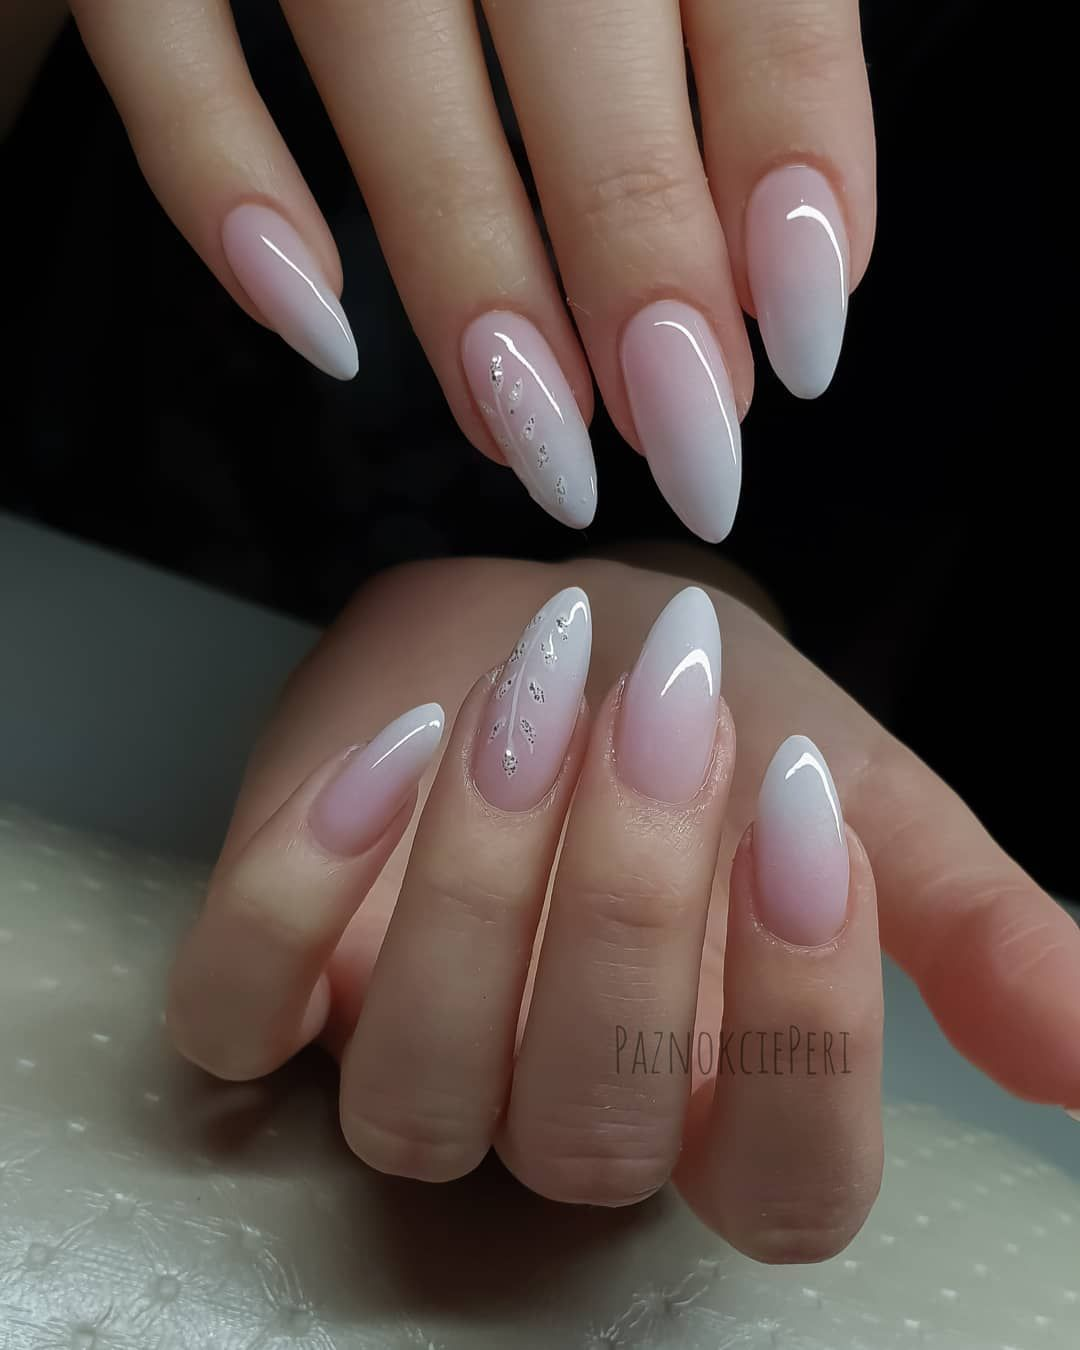 On Average Every Second Nails Blondhair29 Is Babyboomer What Will I Do To Your Wedding Paznokciehybryd Nails Babyb Design Nehtu Bile Nehty A Gelove Nehty